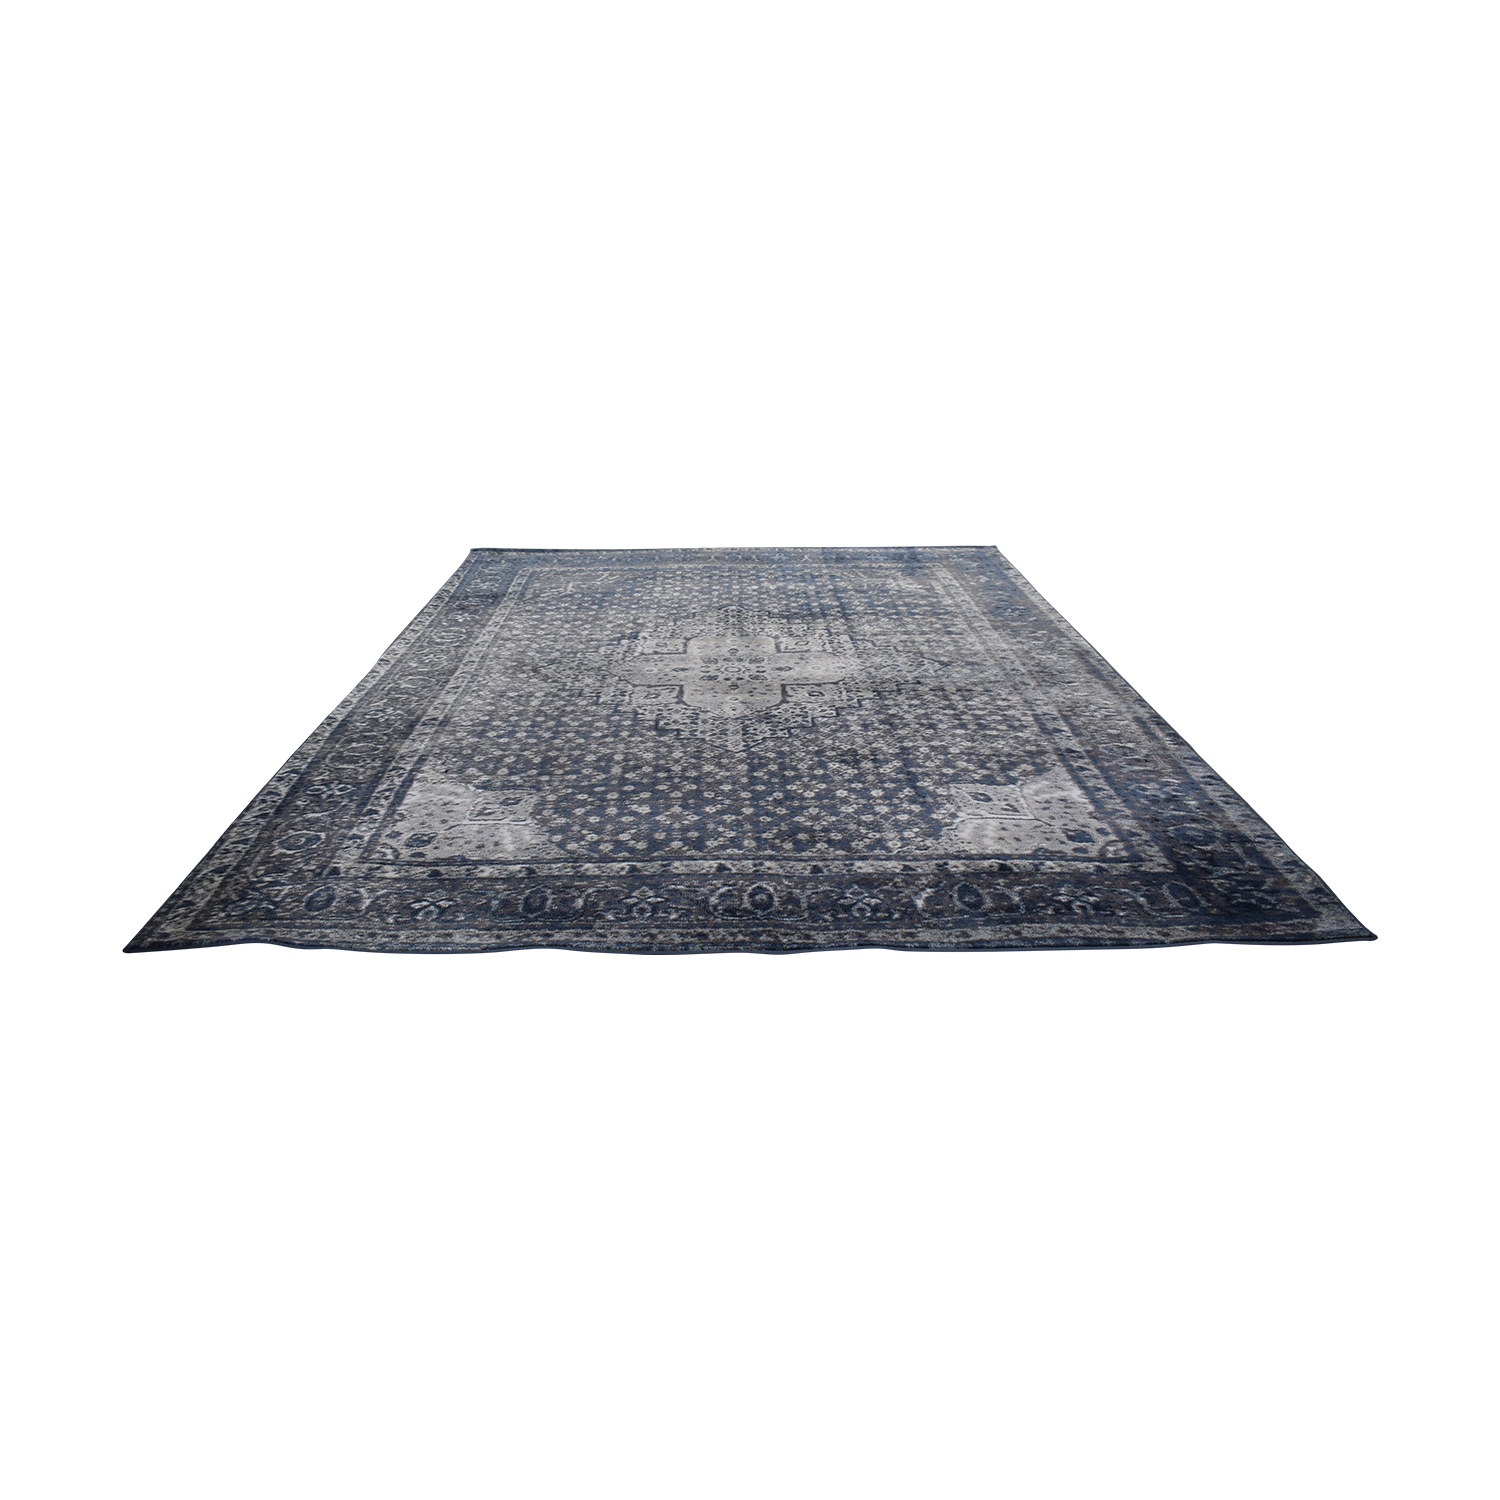 NuLoom Nuloom Traces Large Blue and Grey Area Rug on sale